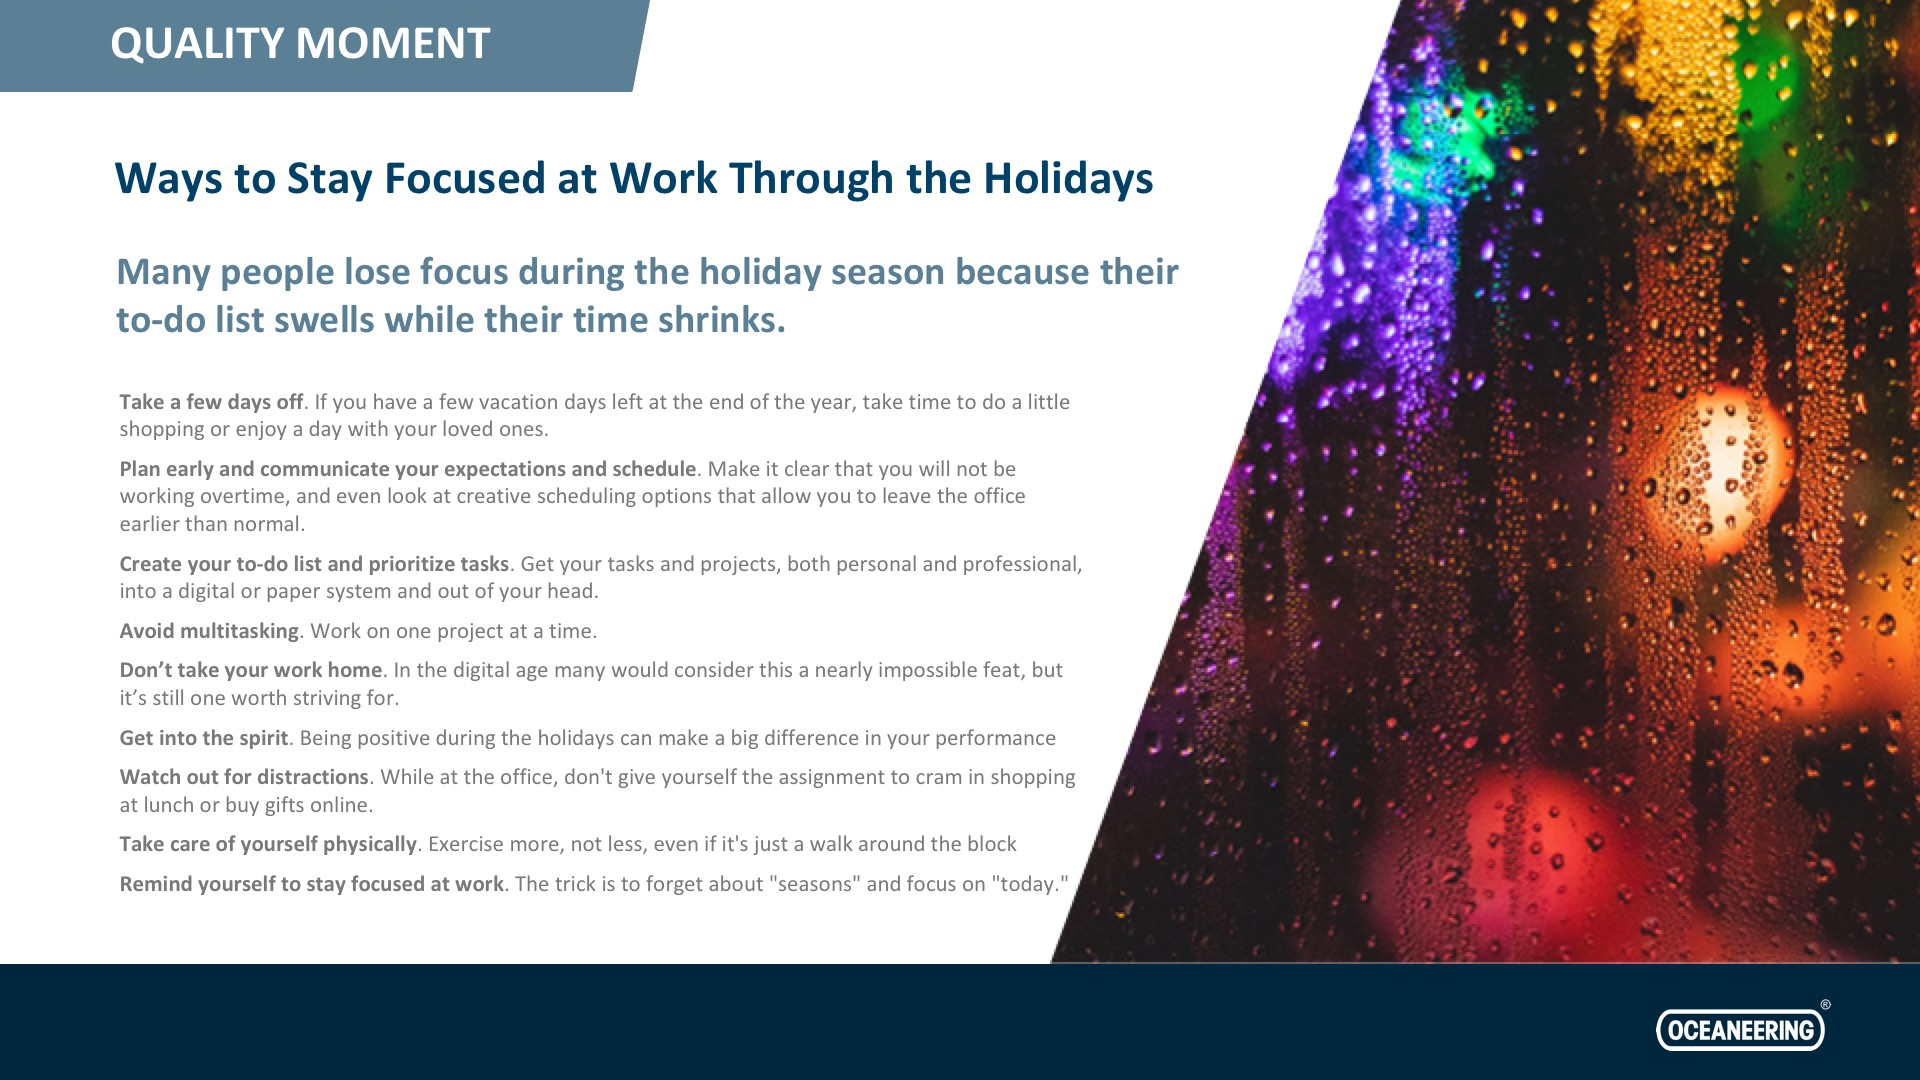 Ways To Stay Focused At Work Through The Holidays